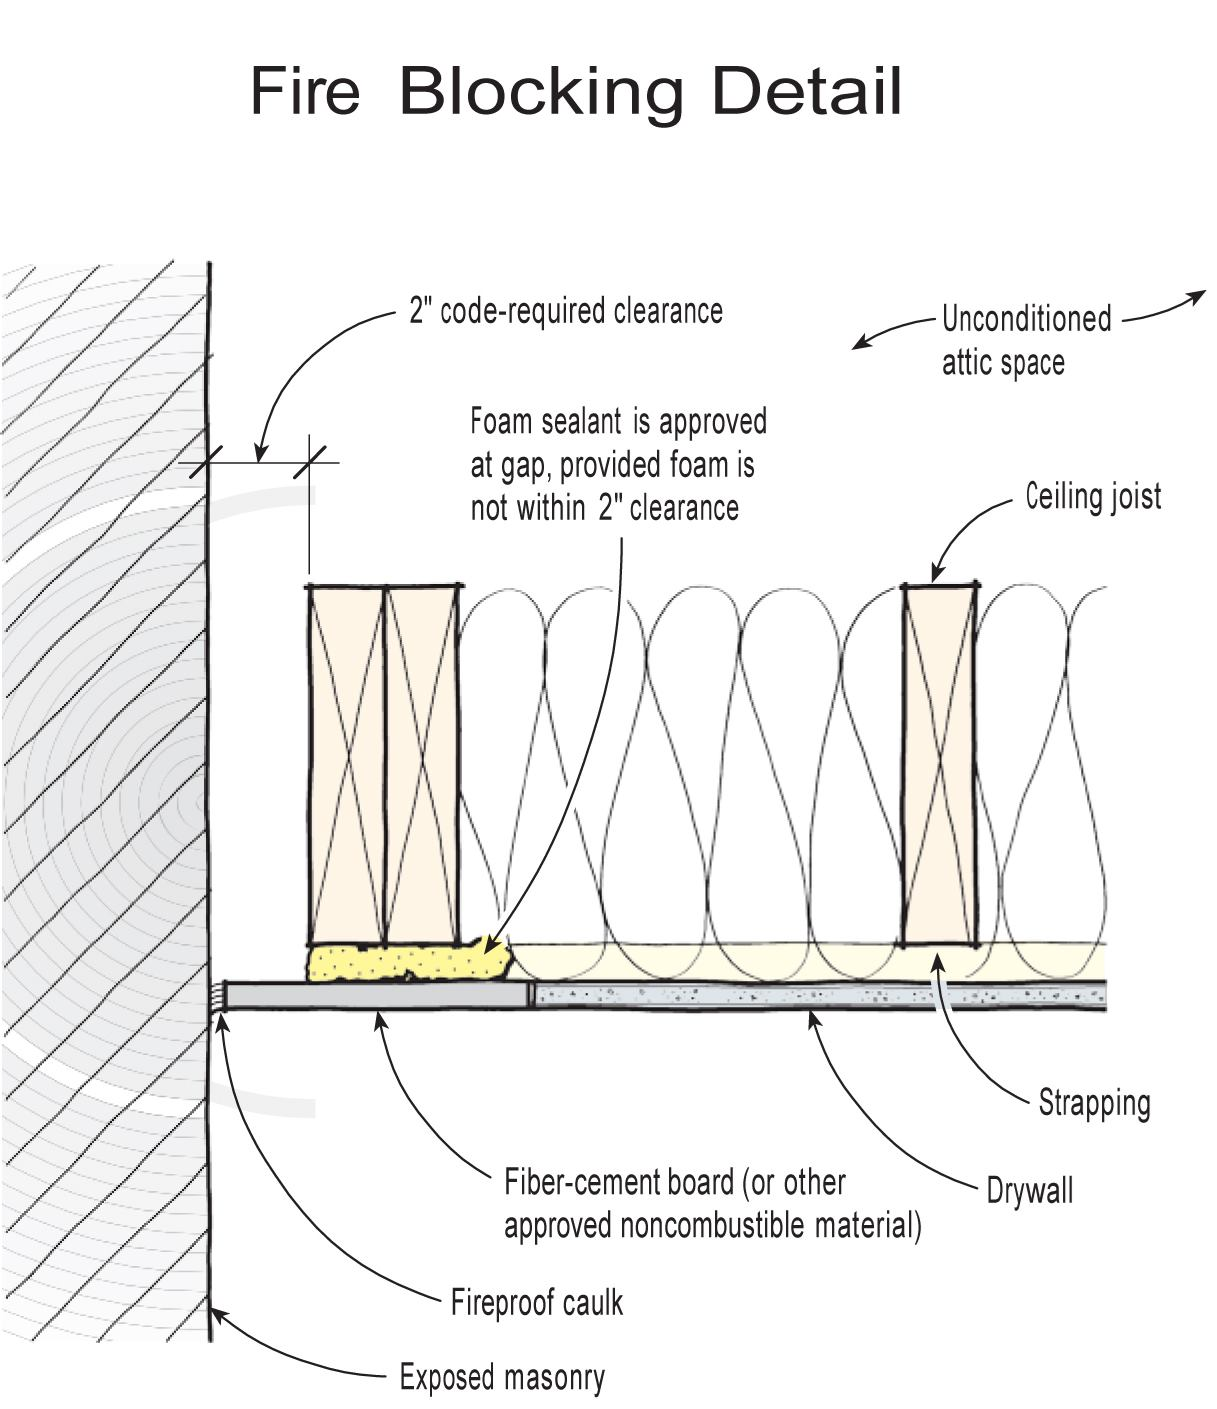 attic plumbing diagram mitsubishi canter wiring troubleshooting sealing around a chimney | jlc online fireplaces, building envelope, air entrainment